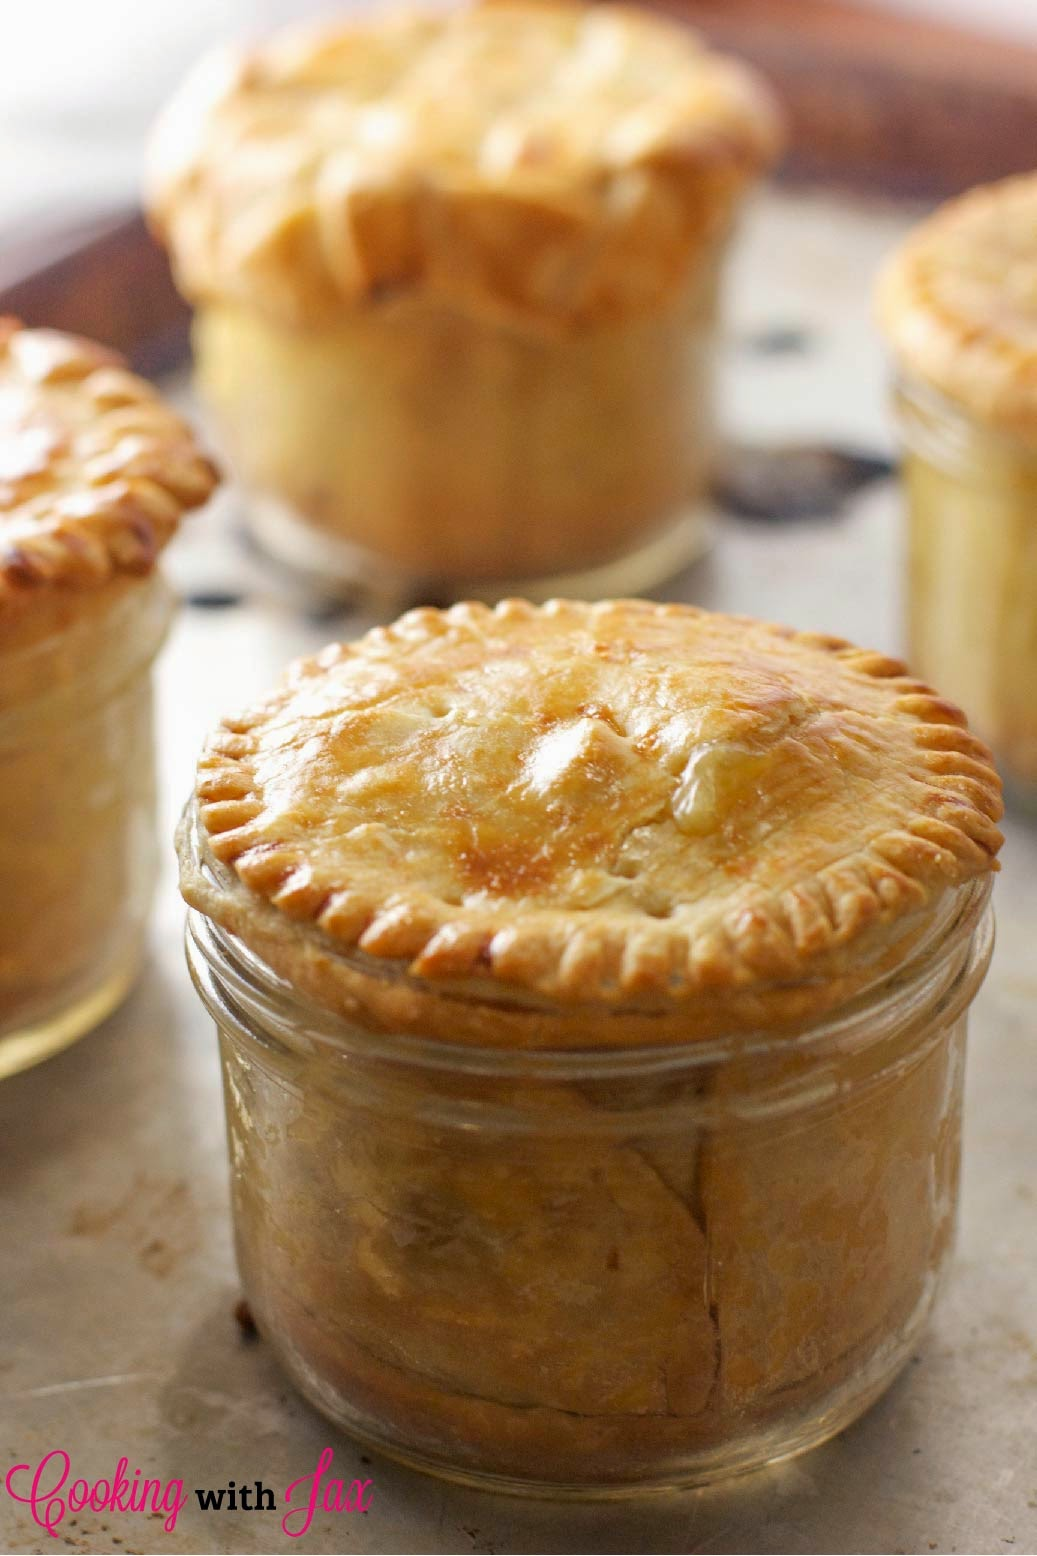 chicken-pot-pie in a jar